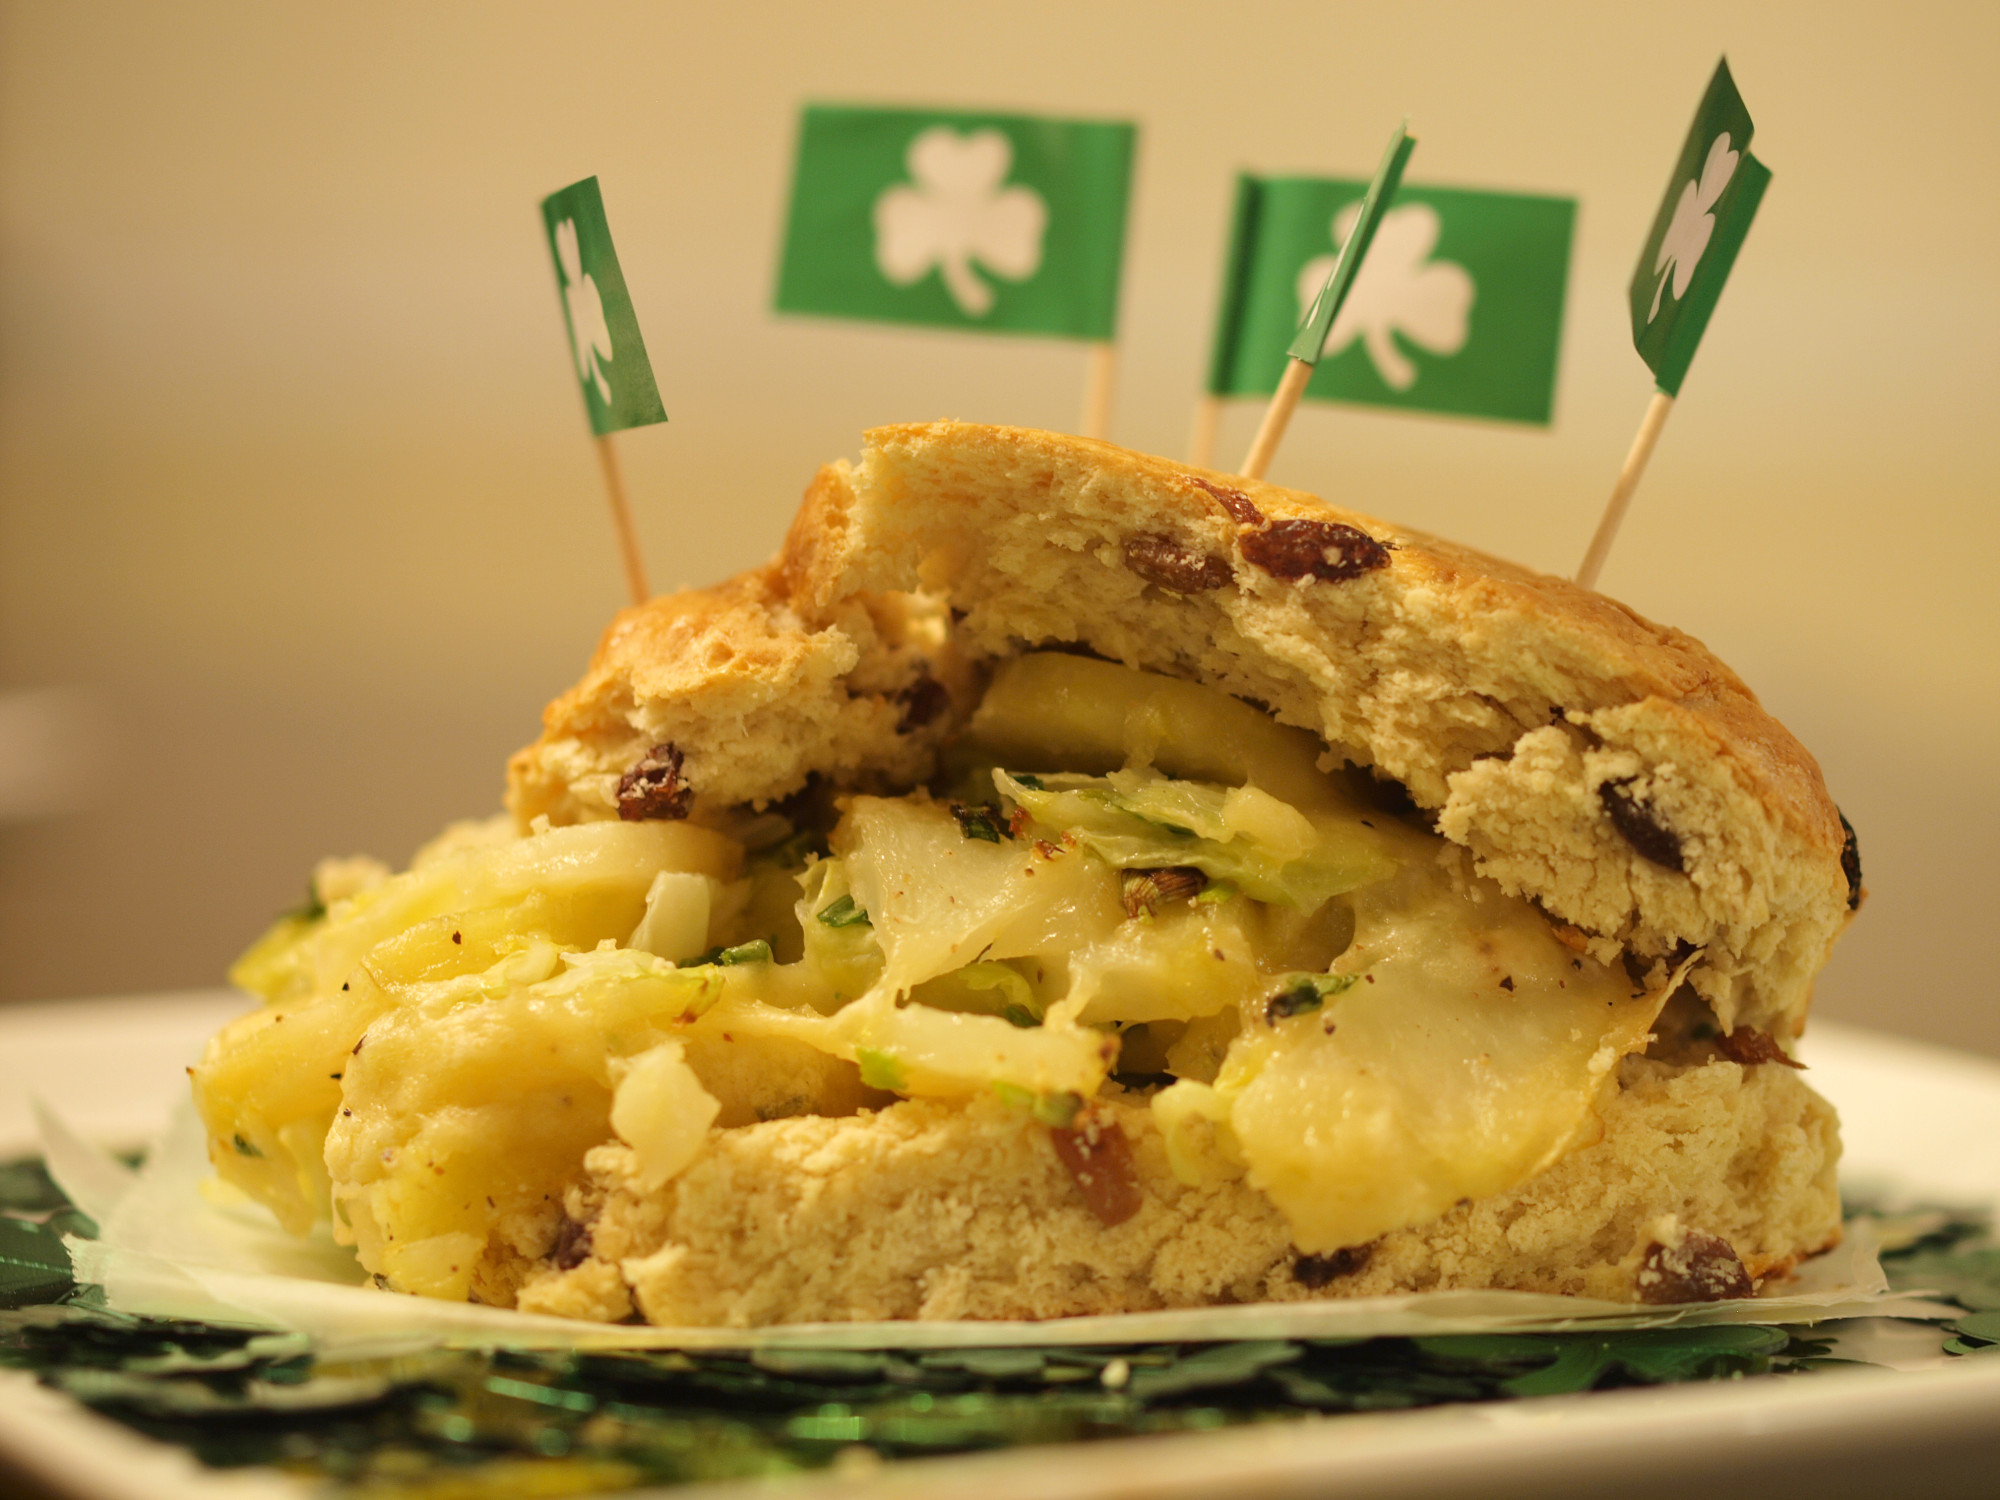 St. Patricks Day Irish Soda Bread Grilled Cheese